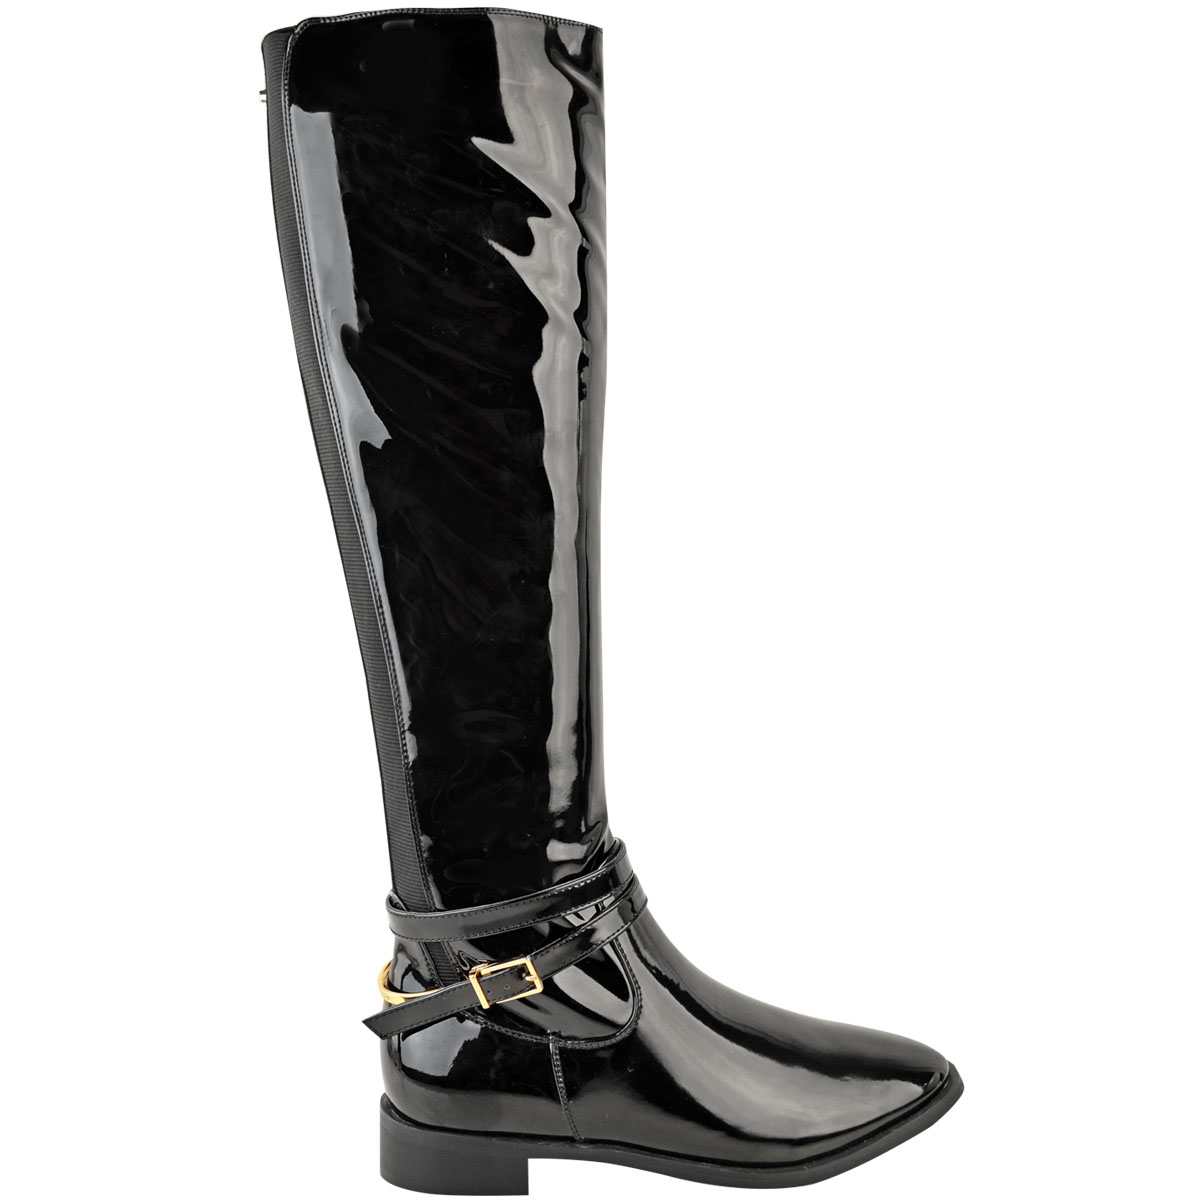 Womens-Ladies-Flat-Stretch-Knee-High-Riding-Boots-Grip-Sole-Winter-Shoes-Size-UK Indexbild 4